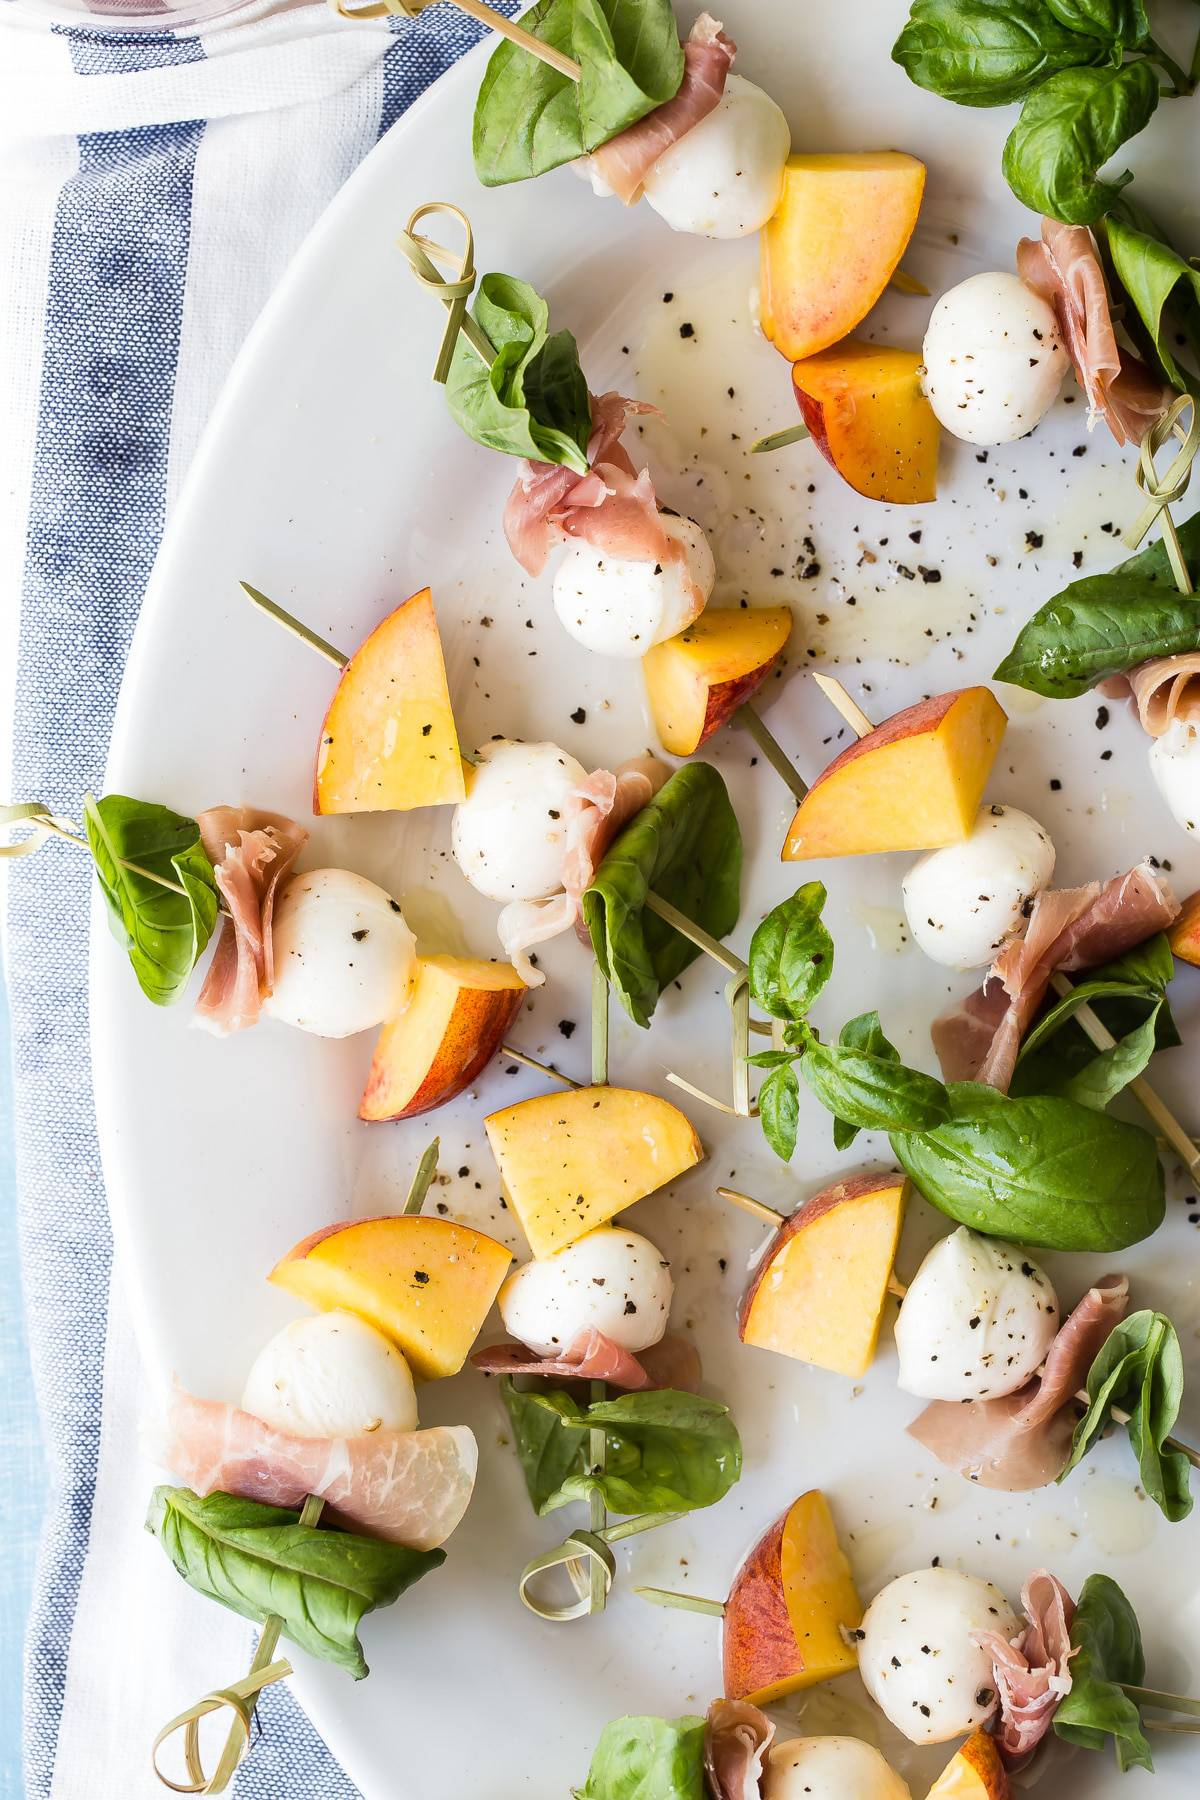 Peach skewers with basil, prosciutto and mozzarella